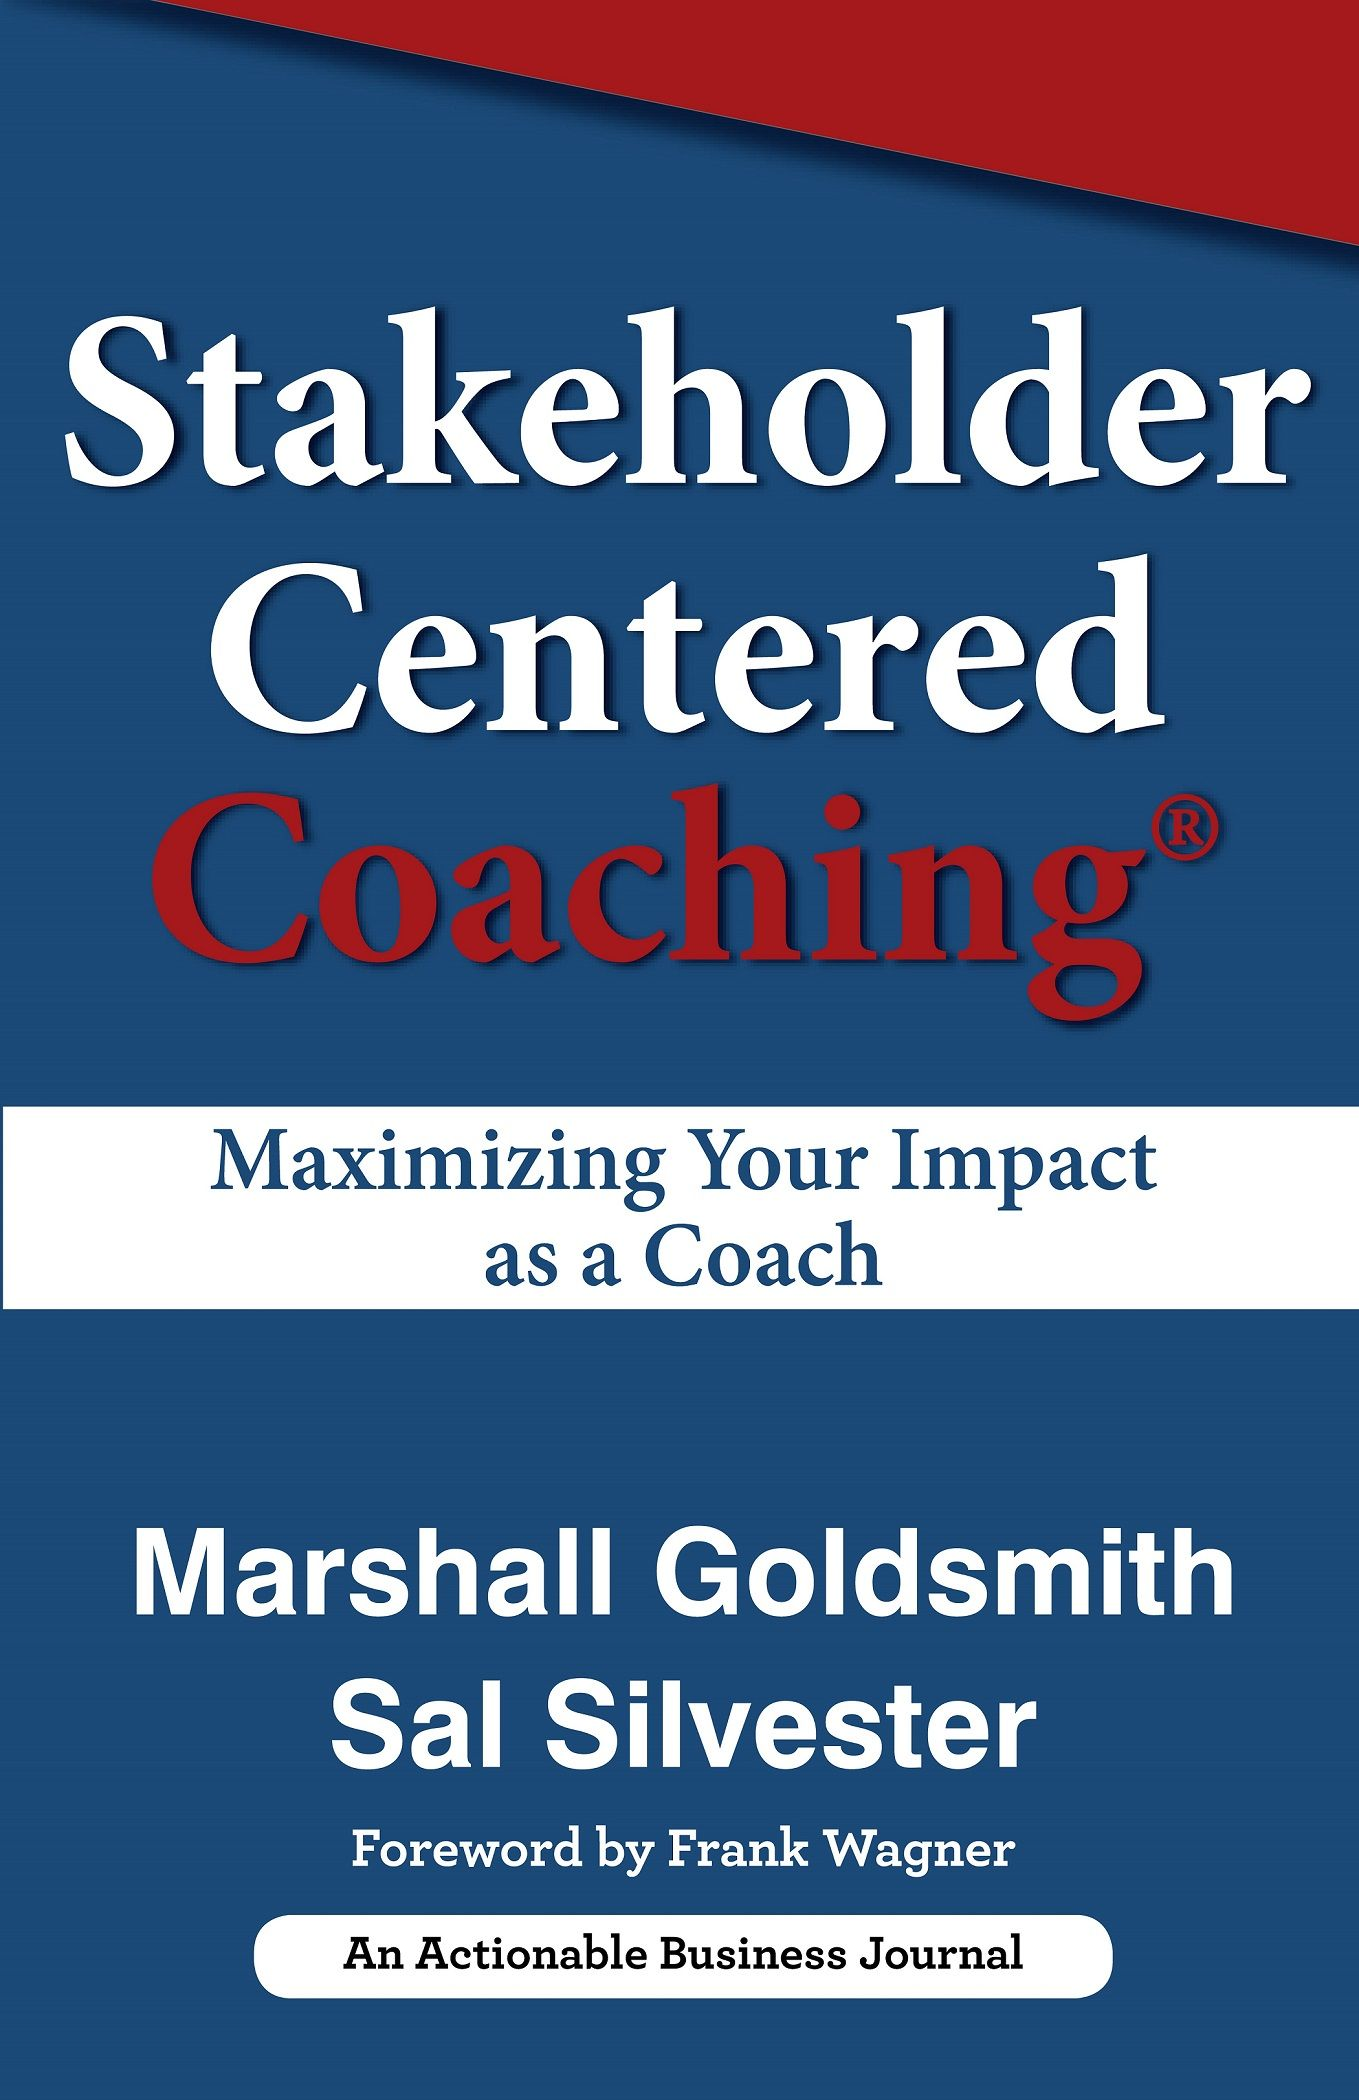 Stakeholder Centered Coaching by Marshall Goldsmith and Sal Silvester